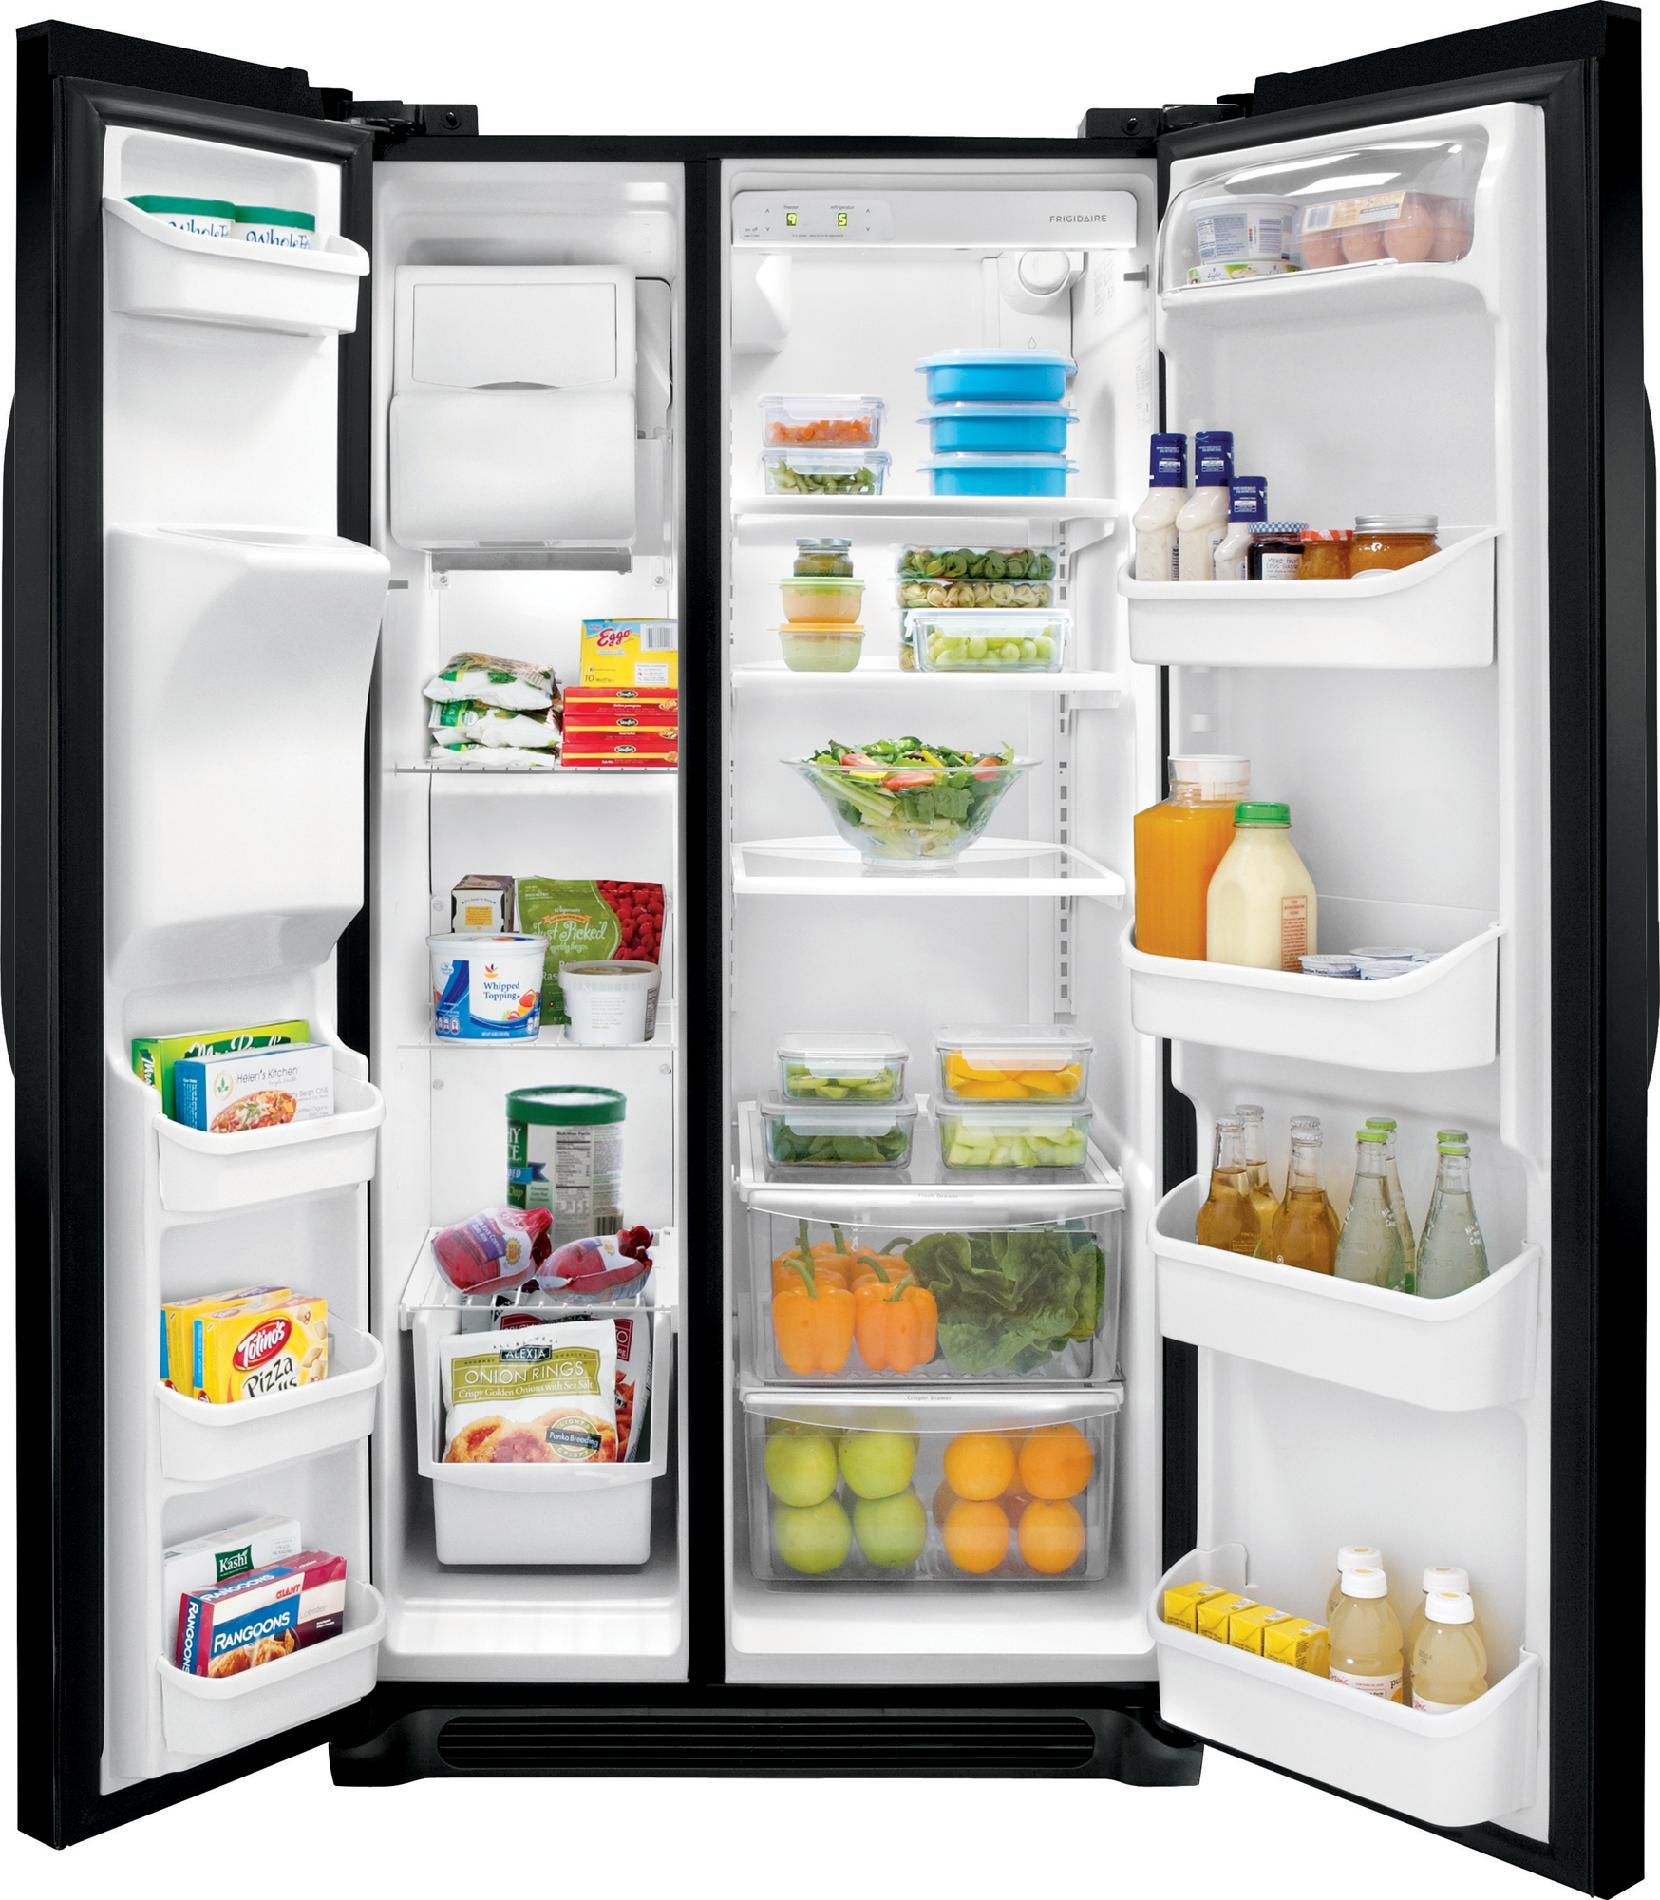 Frigidaire FFHS2322MB 22 cu. ft. Side-by-Side Refrigerator - Black